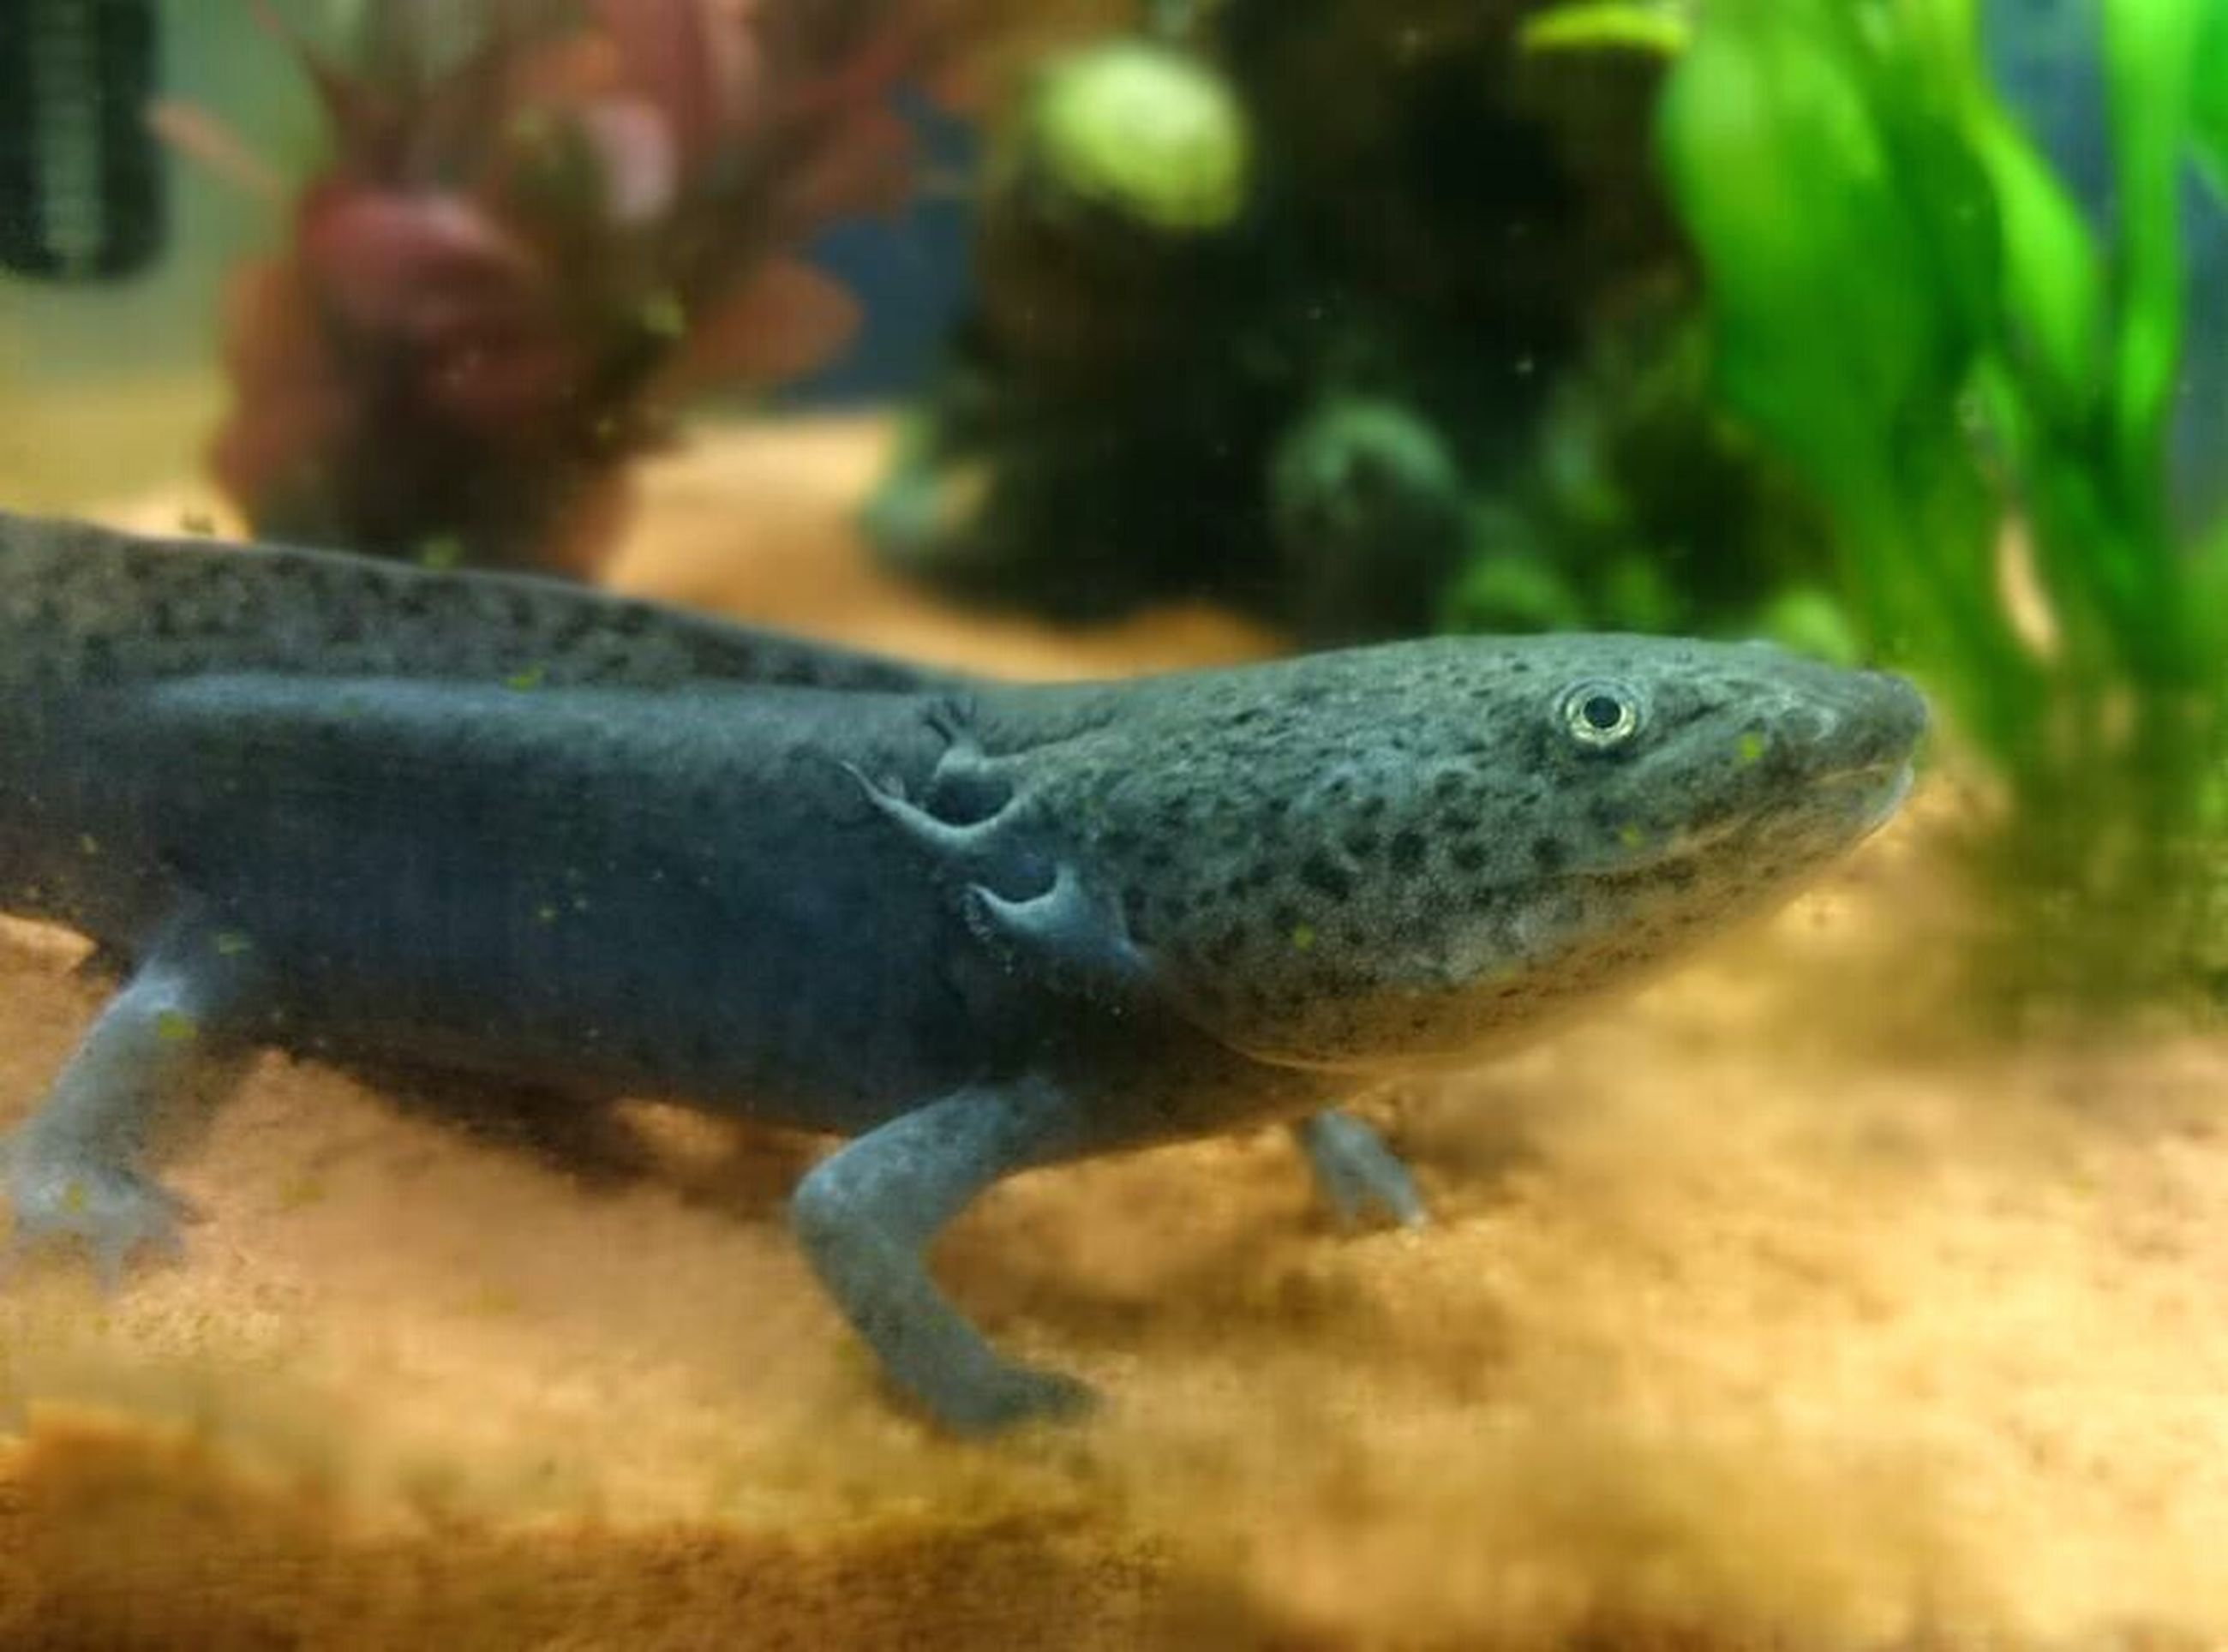 animal themes, animals in the wild, one animal, wildlife, close-up, side view, reptile, focus on foreground, nature, selective focus, fish, water, full length, zoology, underwater, lizard, outdoors, day, two animals, no people